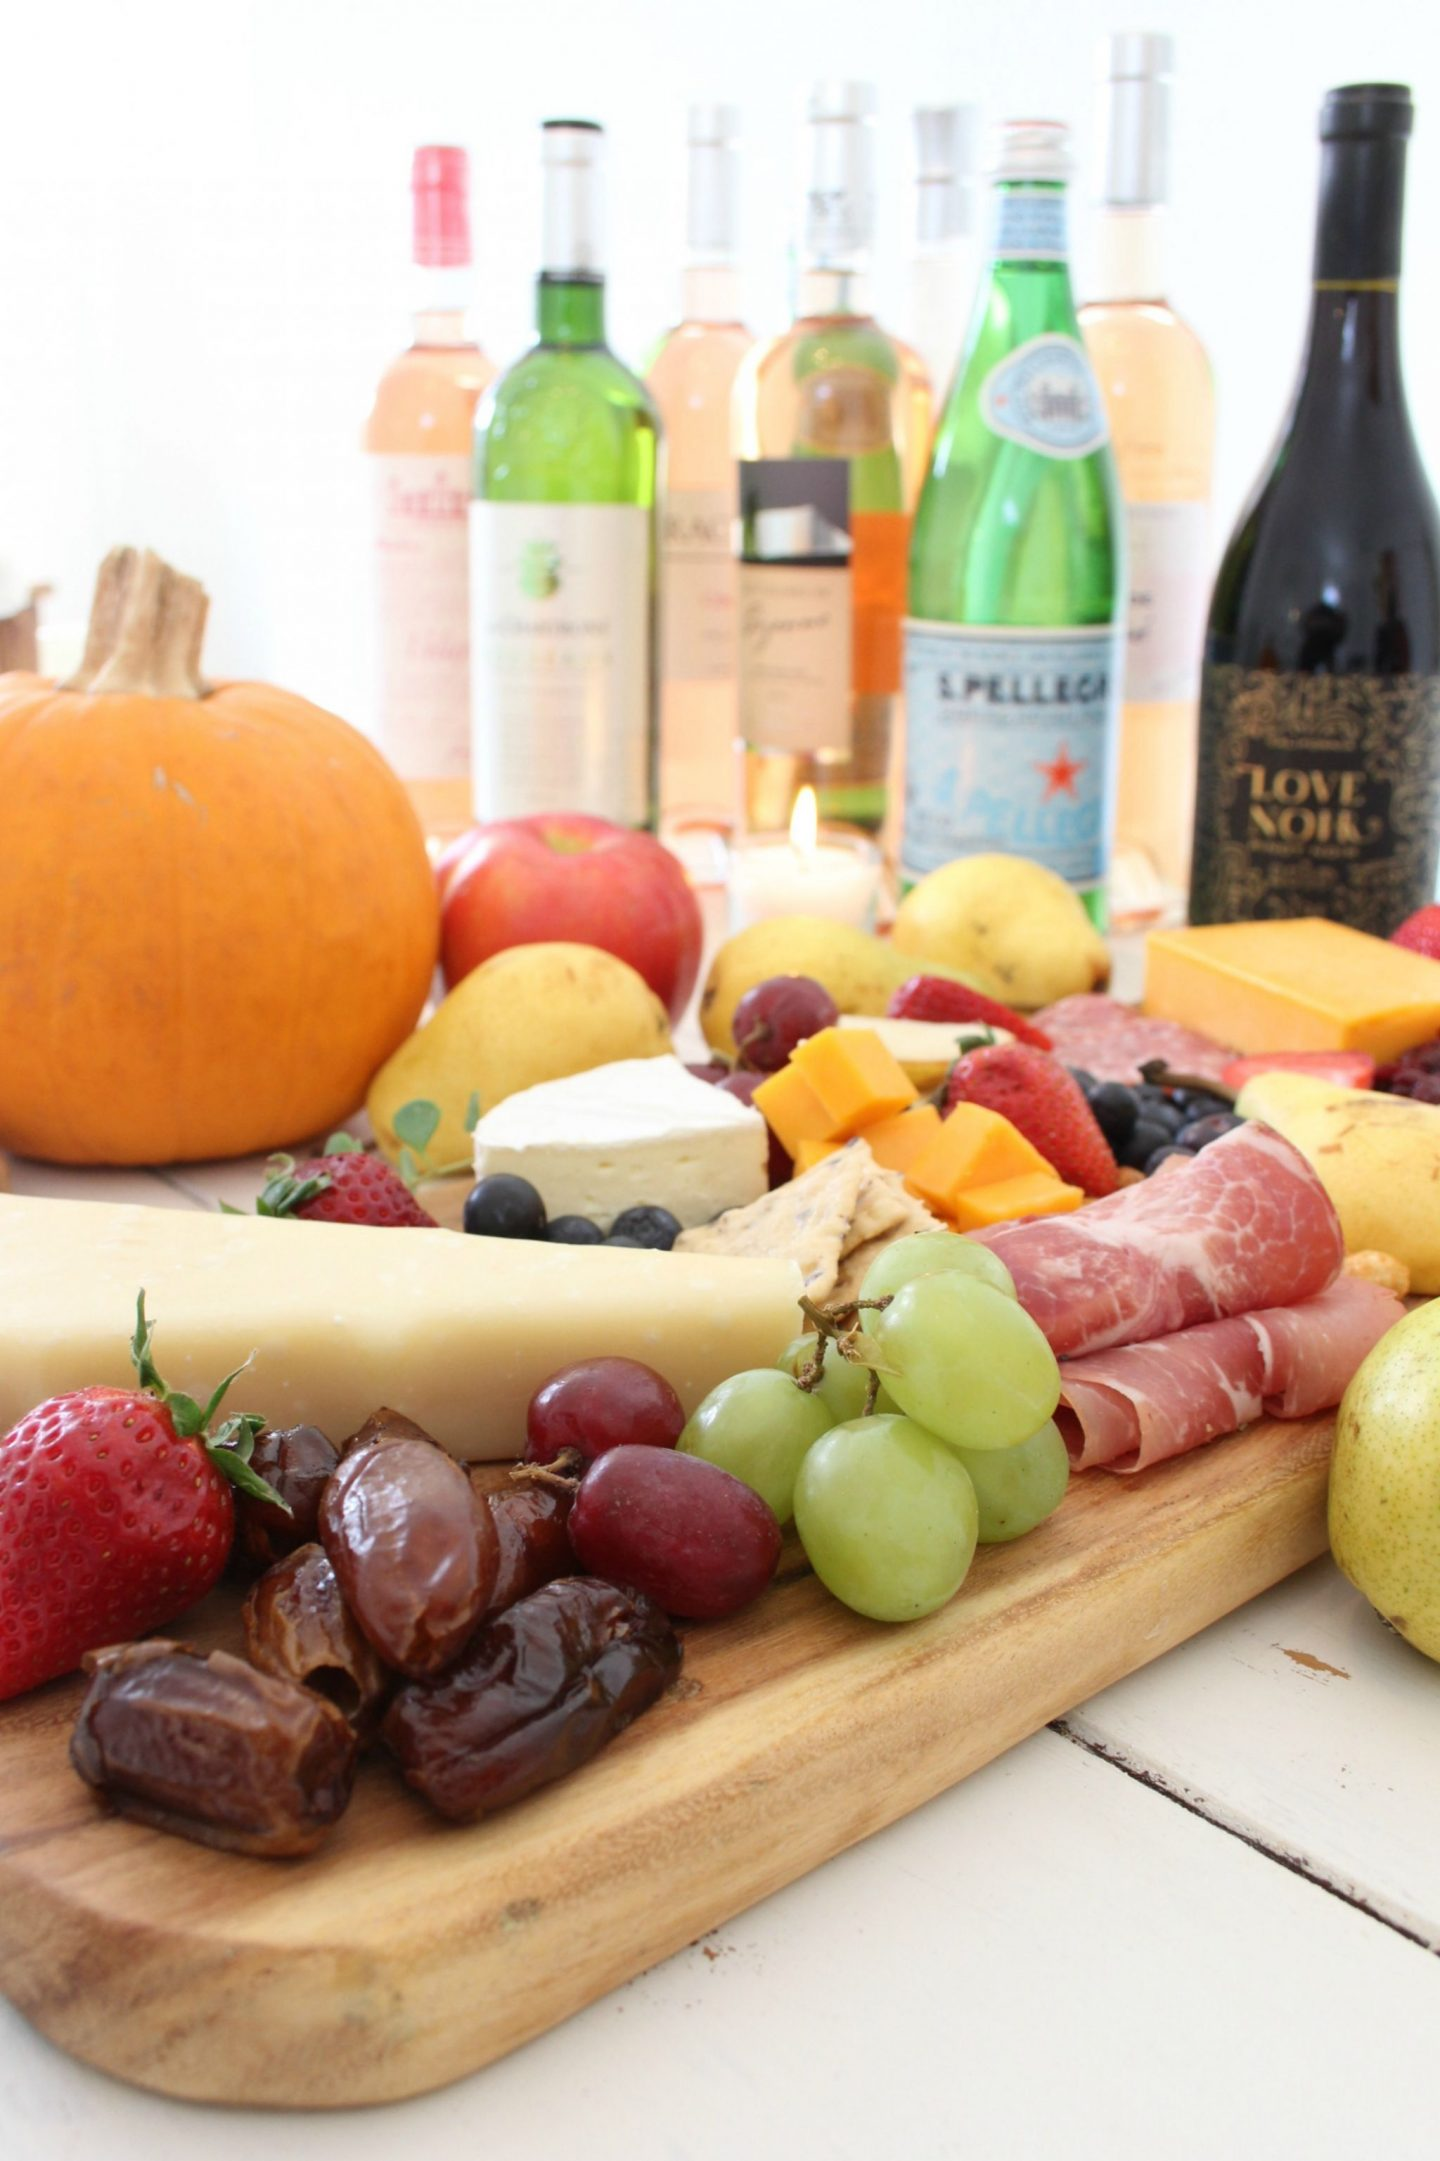 Vibrant and colorful, these cheeseboards with charcuterie and farmers market freshness are perfect for simple entertaining and an elegant tablescape. Serve with your favorite wine! Hello Lovely Studio. #grazeboard